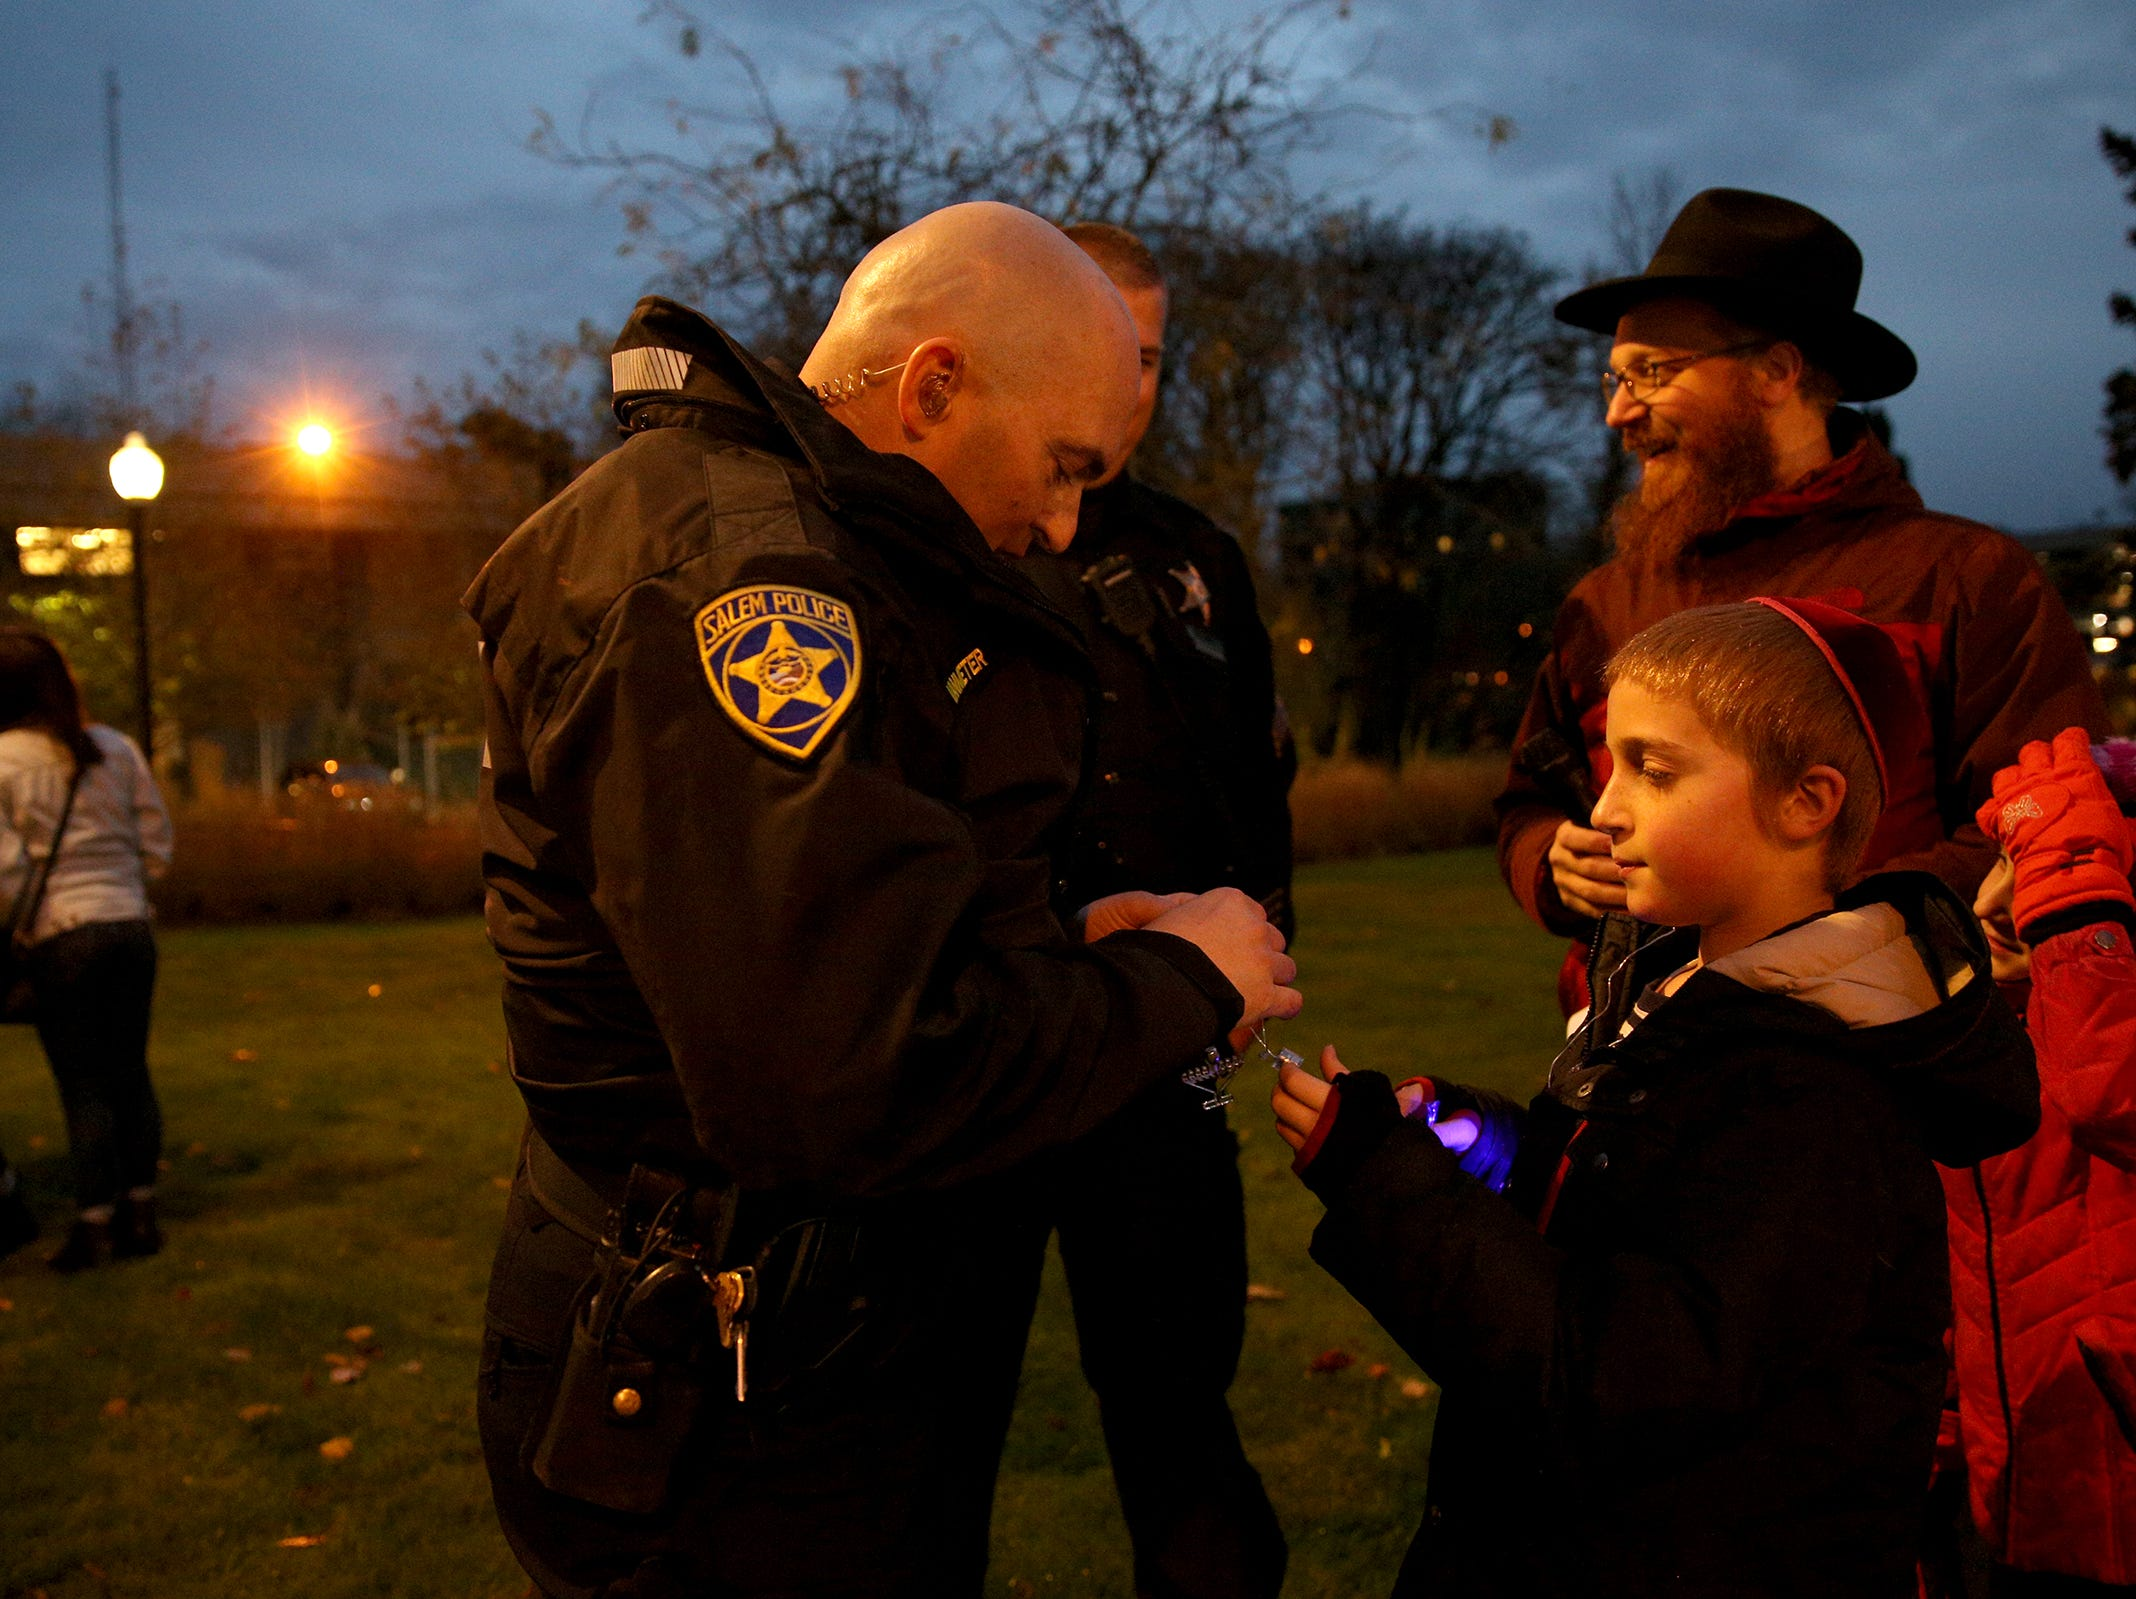 Sholom Perlstein, 10, offers a necklace to Salem Police department Sergeant Jason Vanmeter a necklace during a celebration on the first day of Hanukkah at Mirror Park in downtown Salem on Sunday, Dec. 2, 2018.